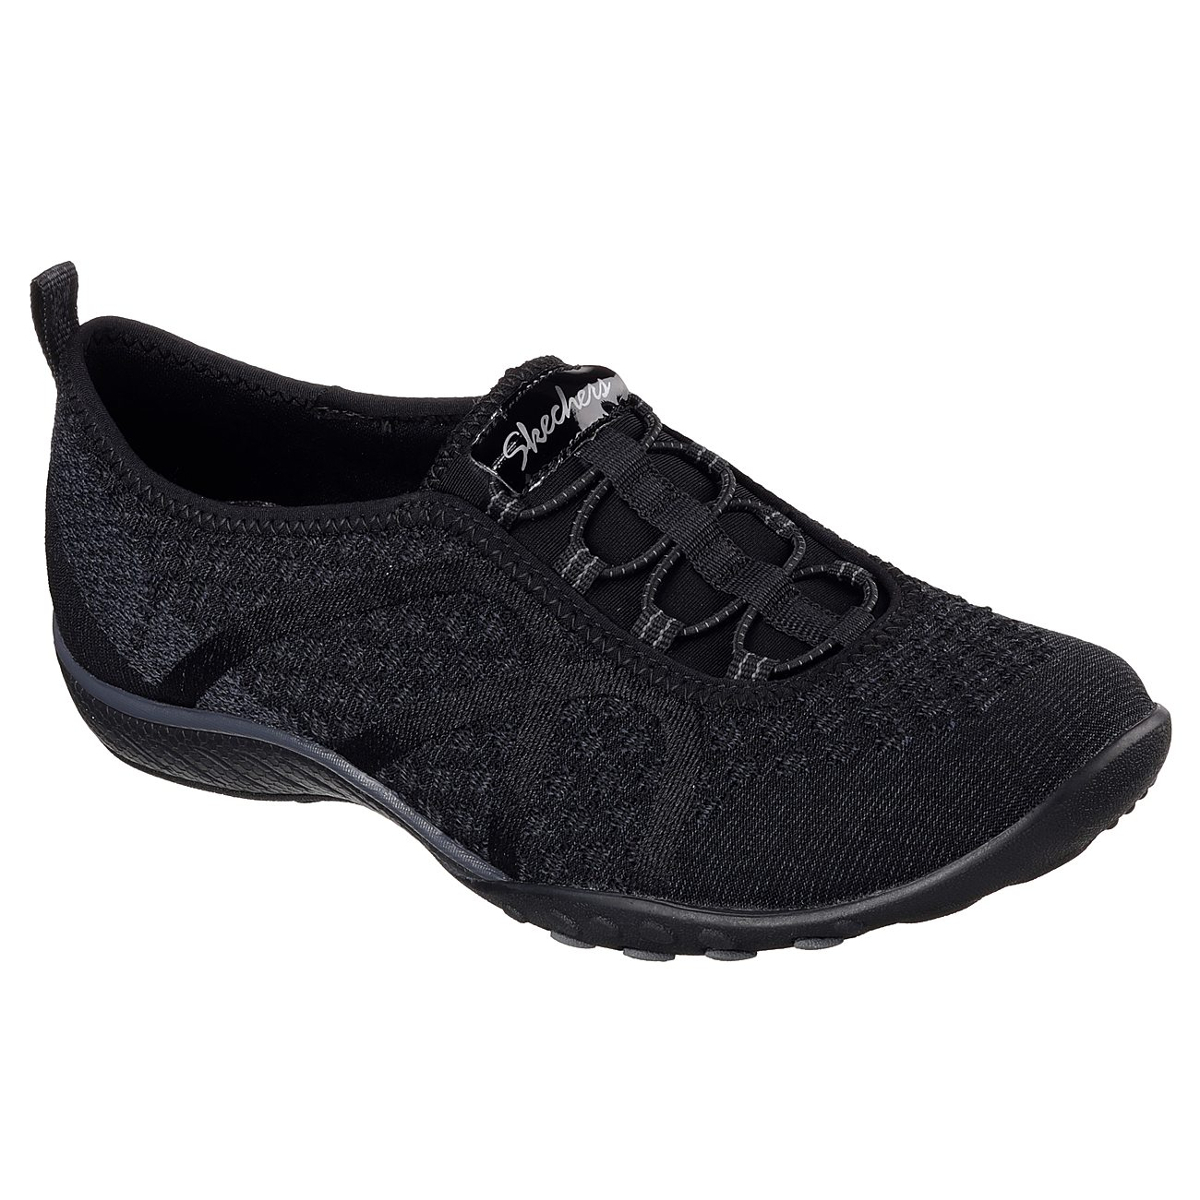 Skechers Women's Relaxed Fit: Breathe Easy - Fortune-Knit Casual Slip-On Shoes - Black, 11